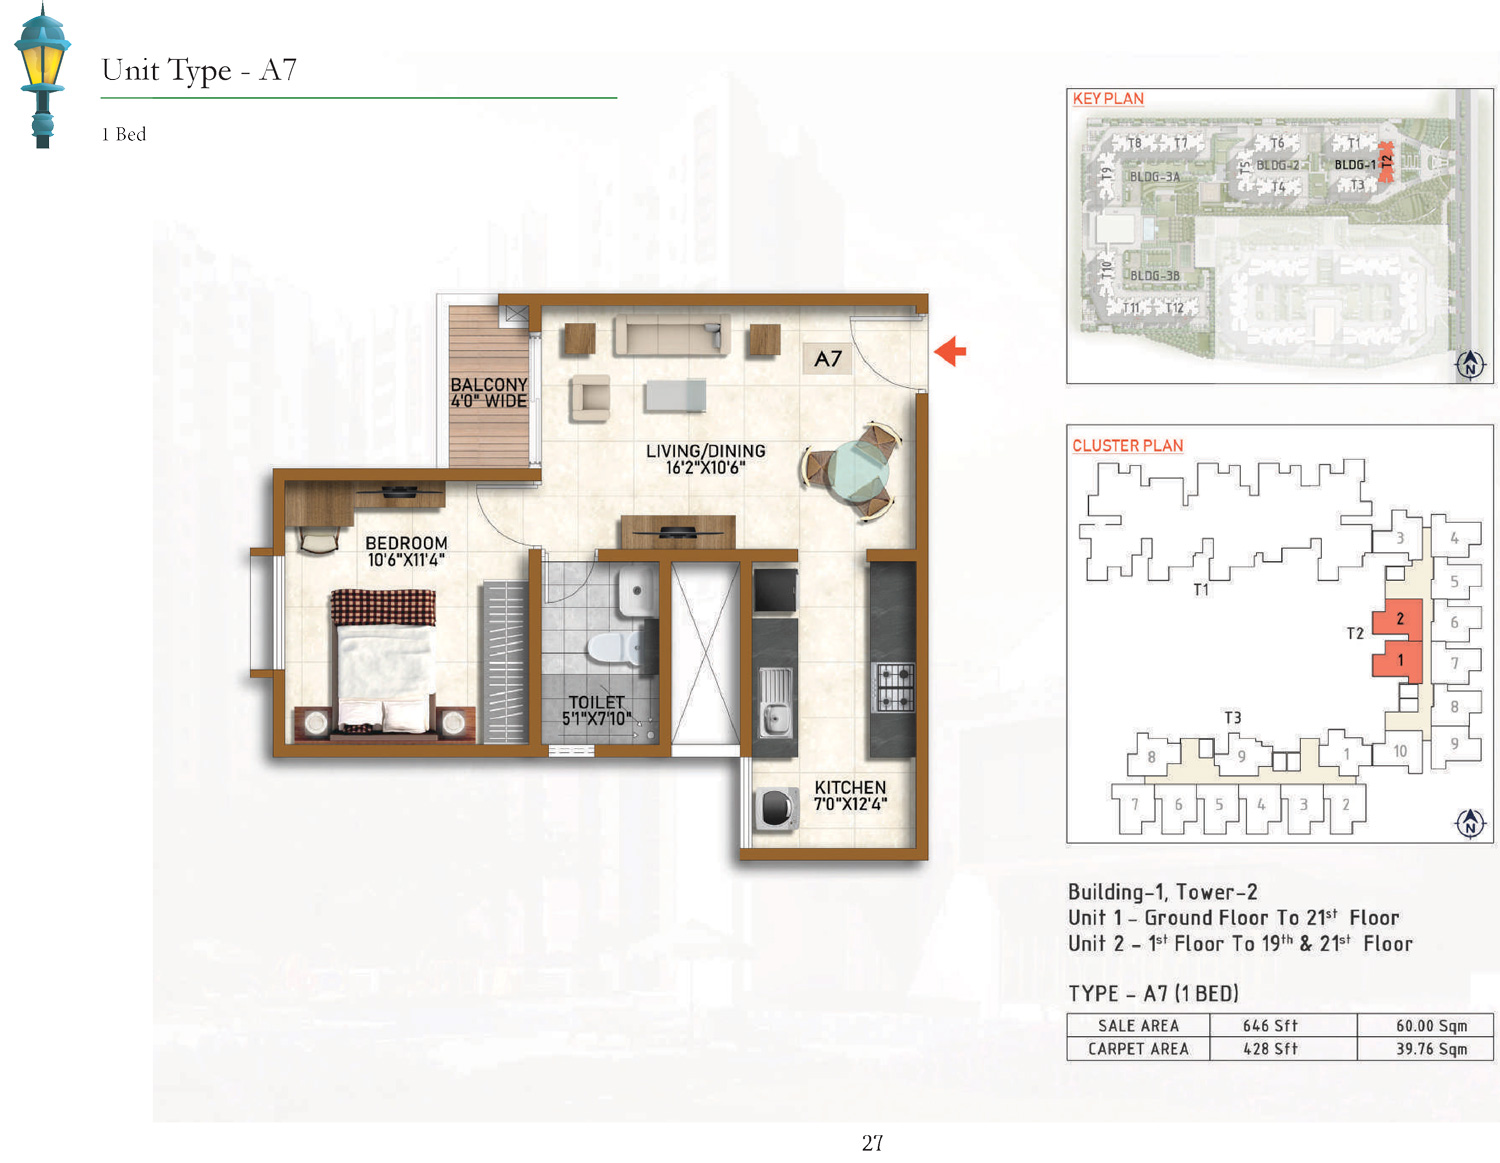 Type A7 - 646 Sq Ft